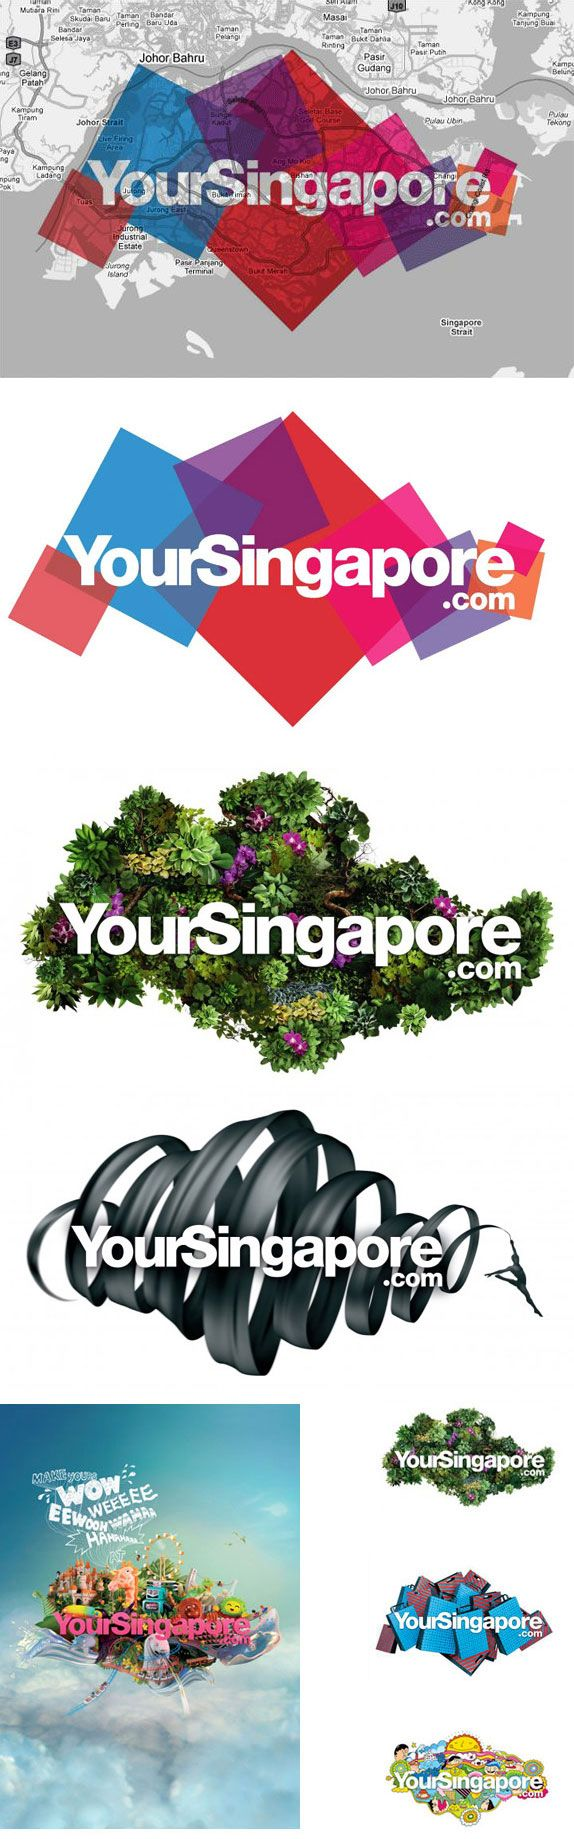 Your Singapore by BBH Asia-Pacific #city_brand 2010-just cos I like the changing images behind the words...